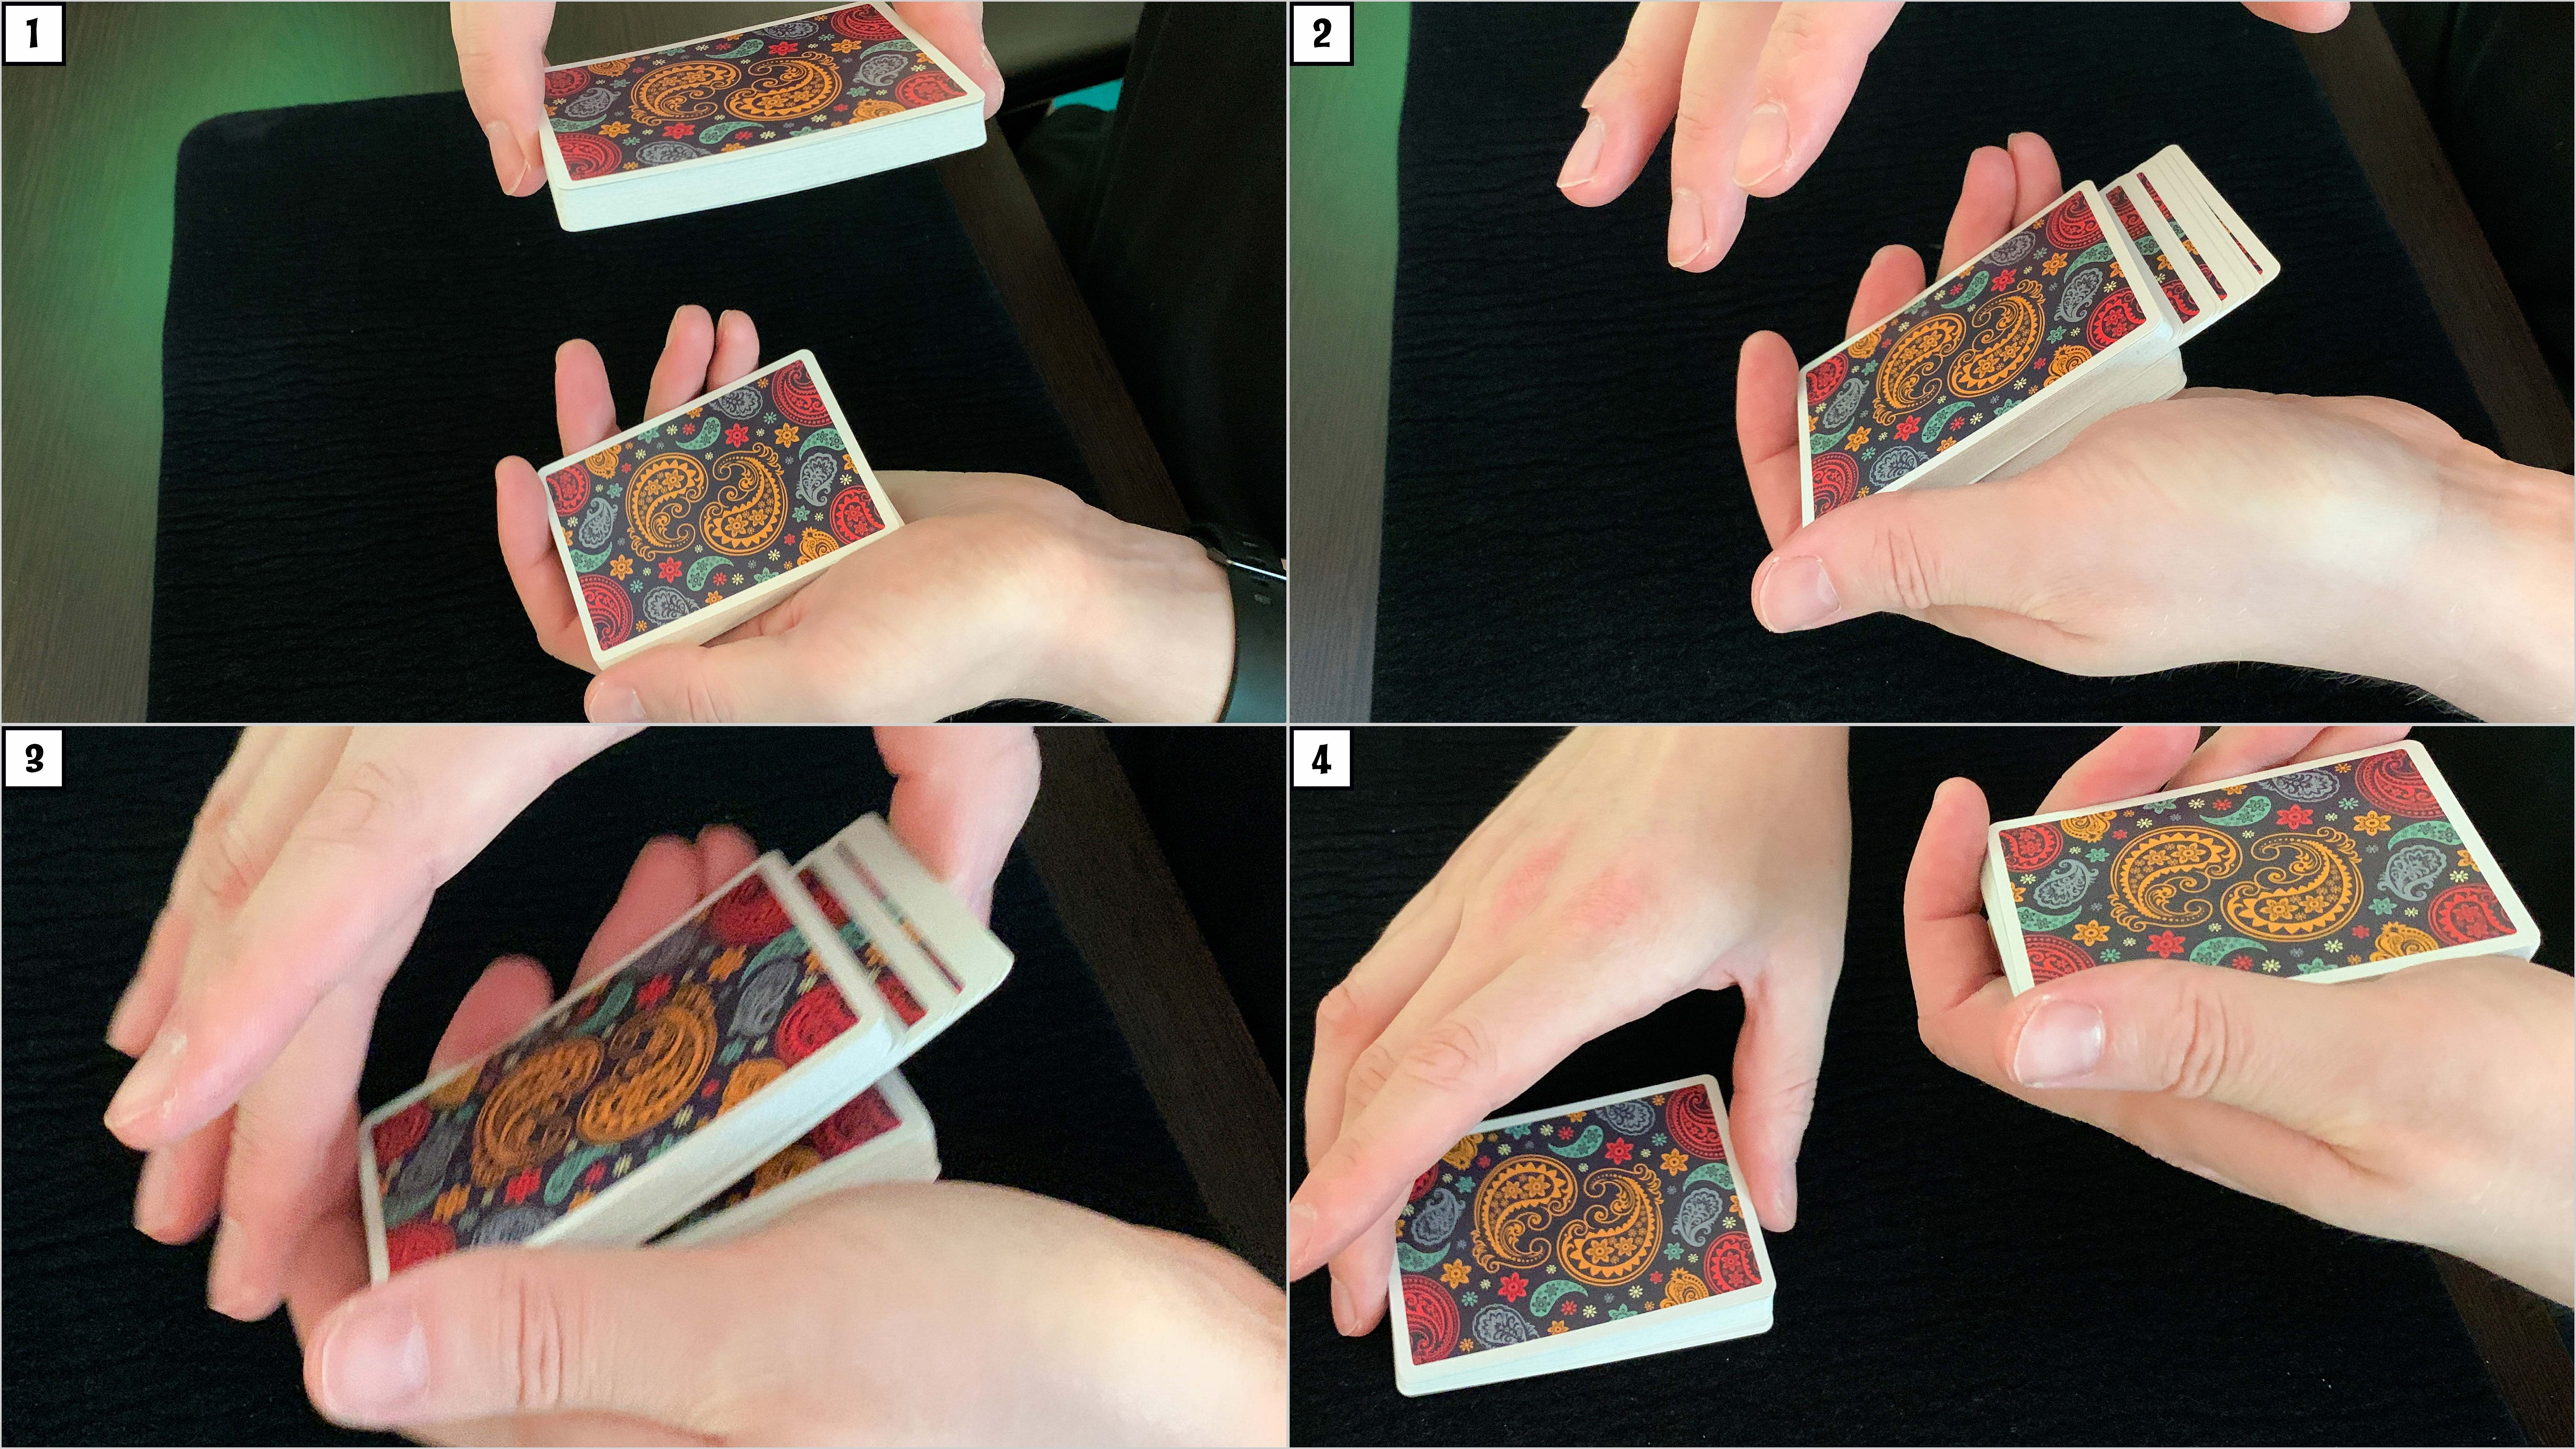 Dapper deck playing cards are used to teach how to control a card to the top of the deck